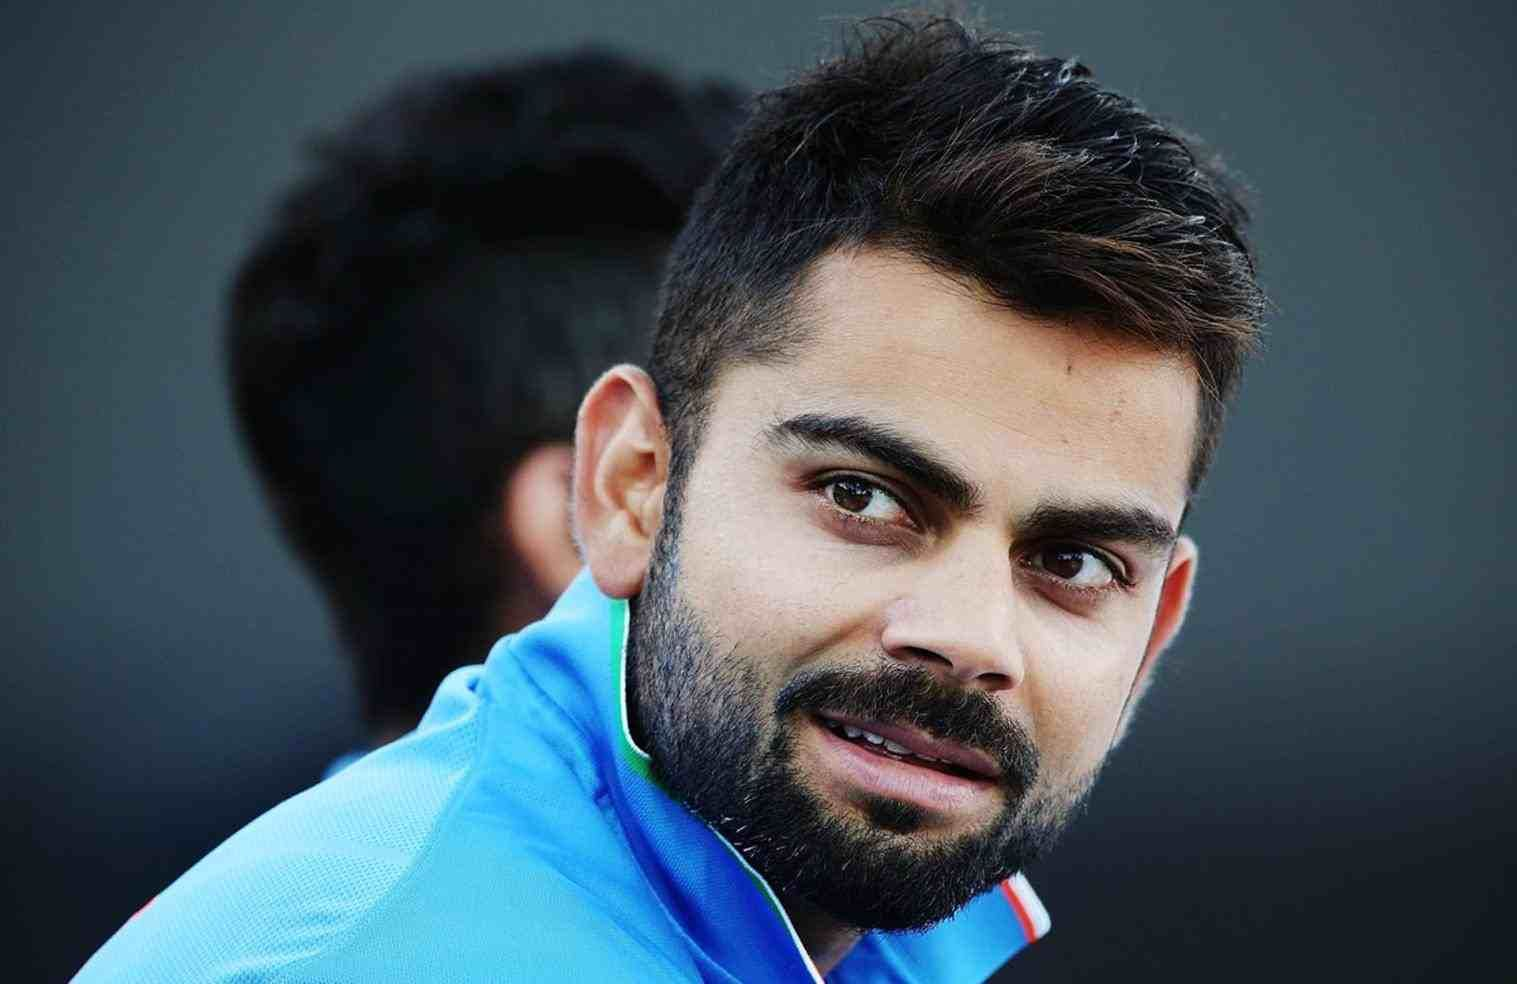 virat kohli hairstyle in t20 world cup 2016 Hair Stylist and 1517x984